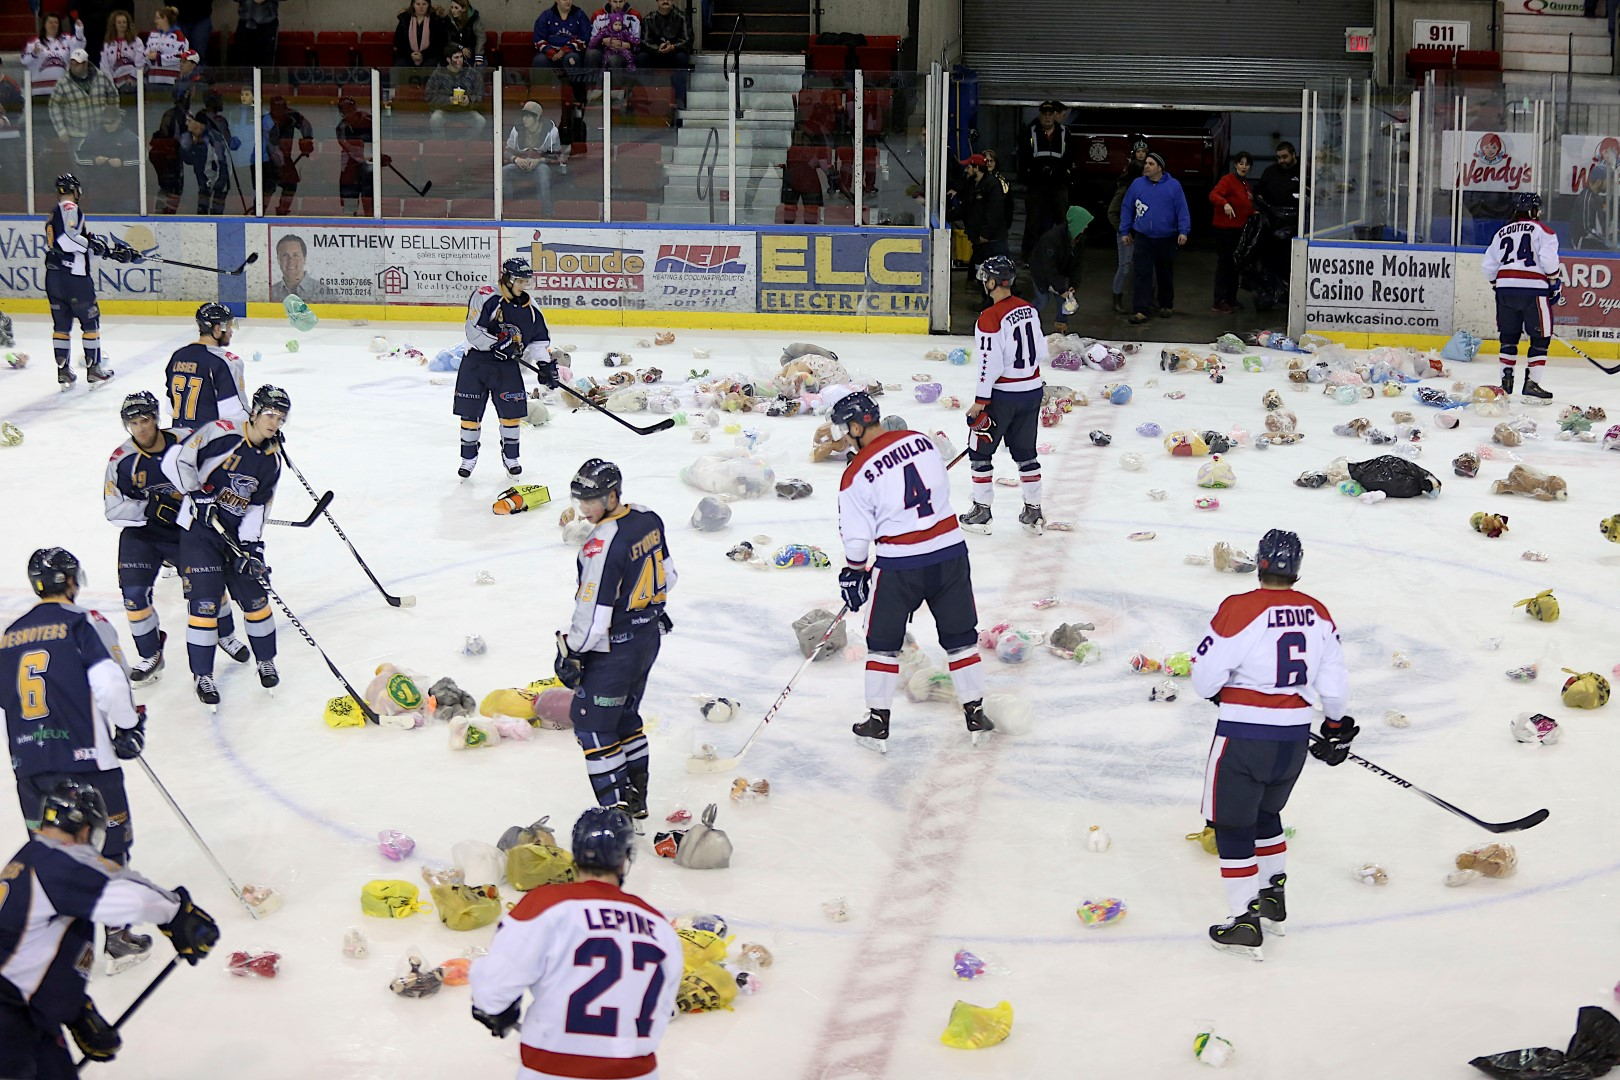 Players with the Thetford-Mines Isothermic and the Cornwall River Kings help pick up 750 teddy bears off the ice after their game Dec. 20, 2014. The toys were given to Sparky's Toy Drive. (Photo/Allison Papineau)